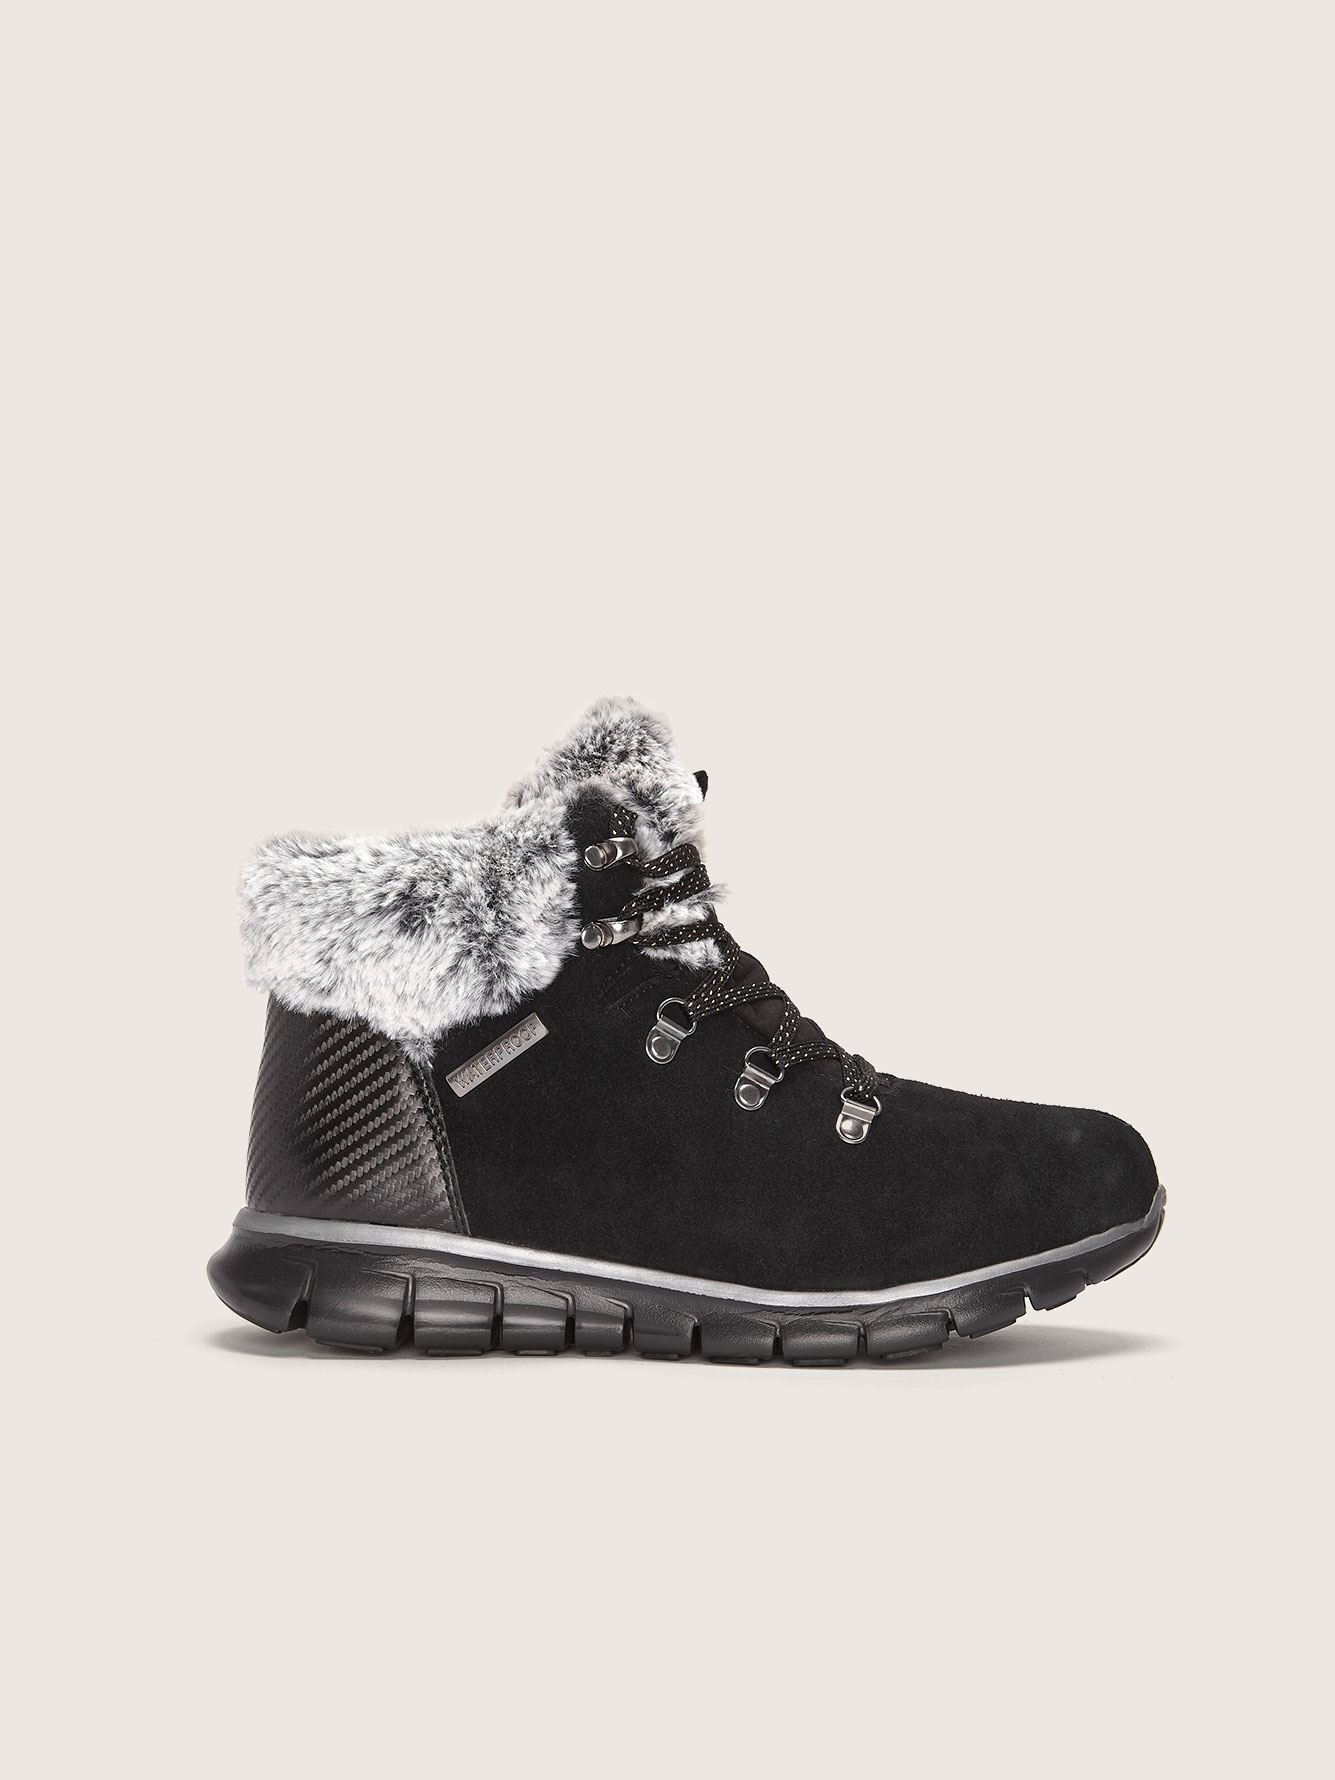 Wide Lace Up Boot with Faux Fur Collar - Skechers